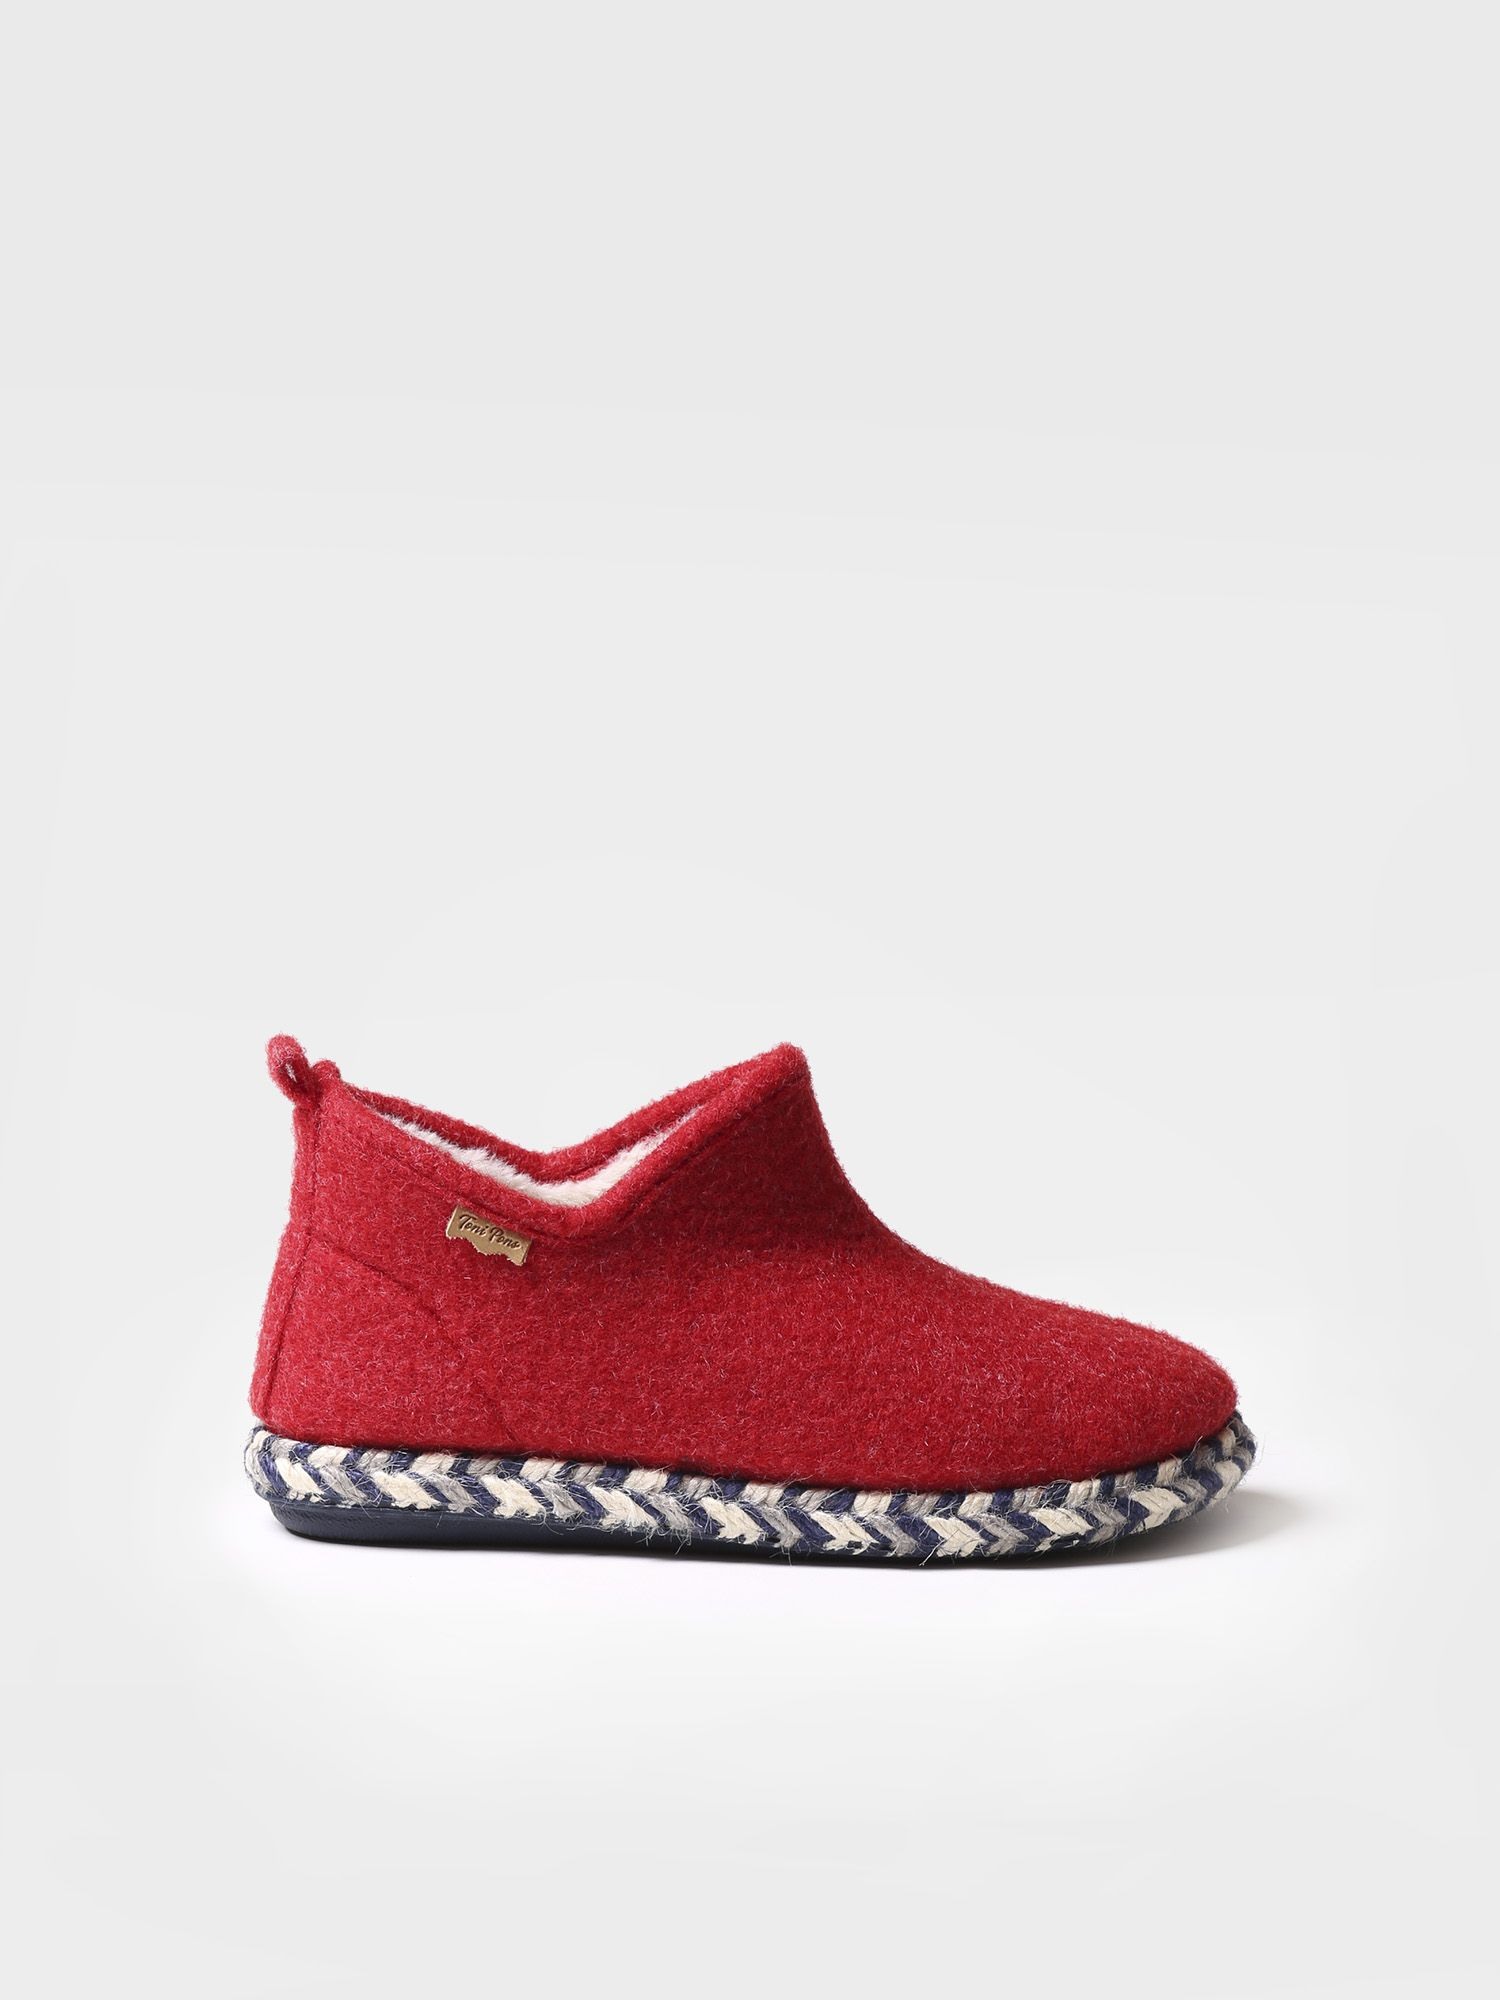 Slipper for women made of felt - MAIA-FP